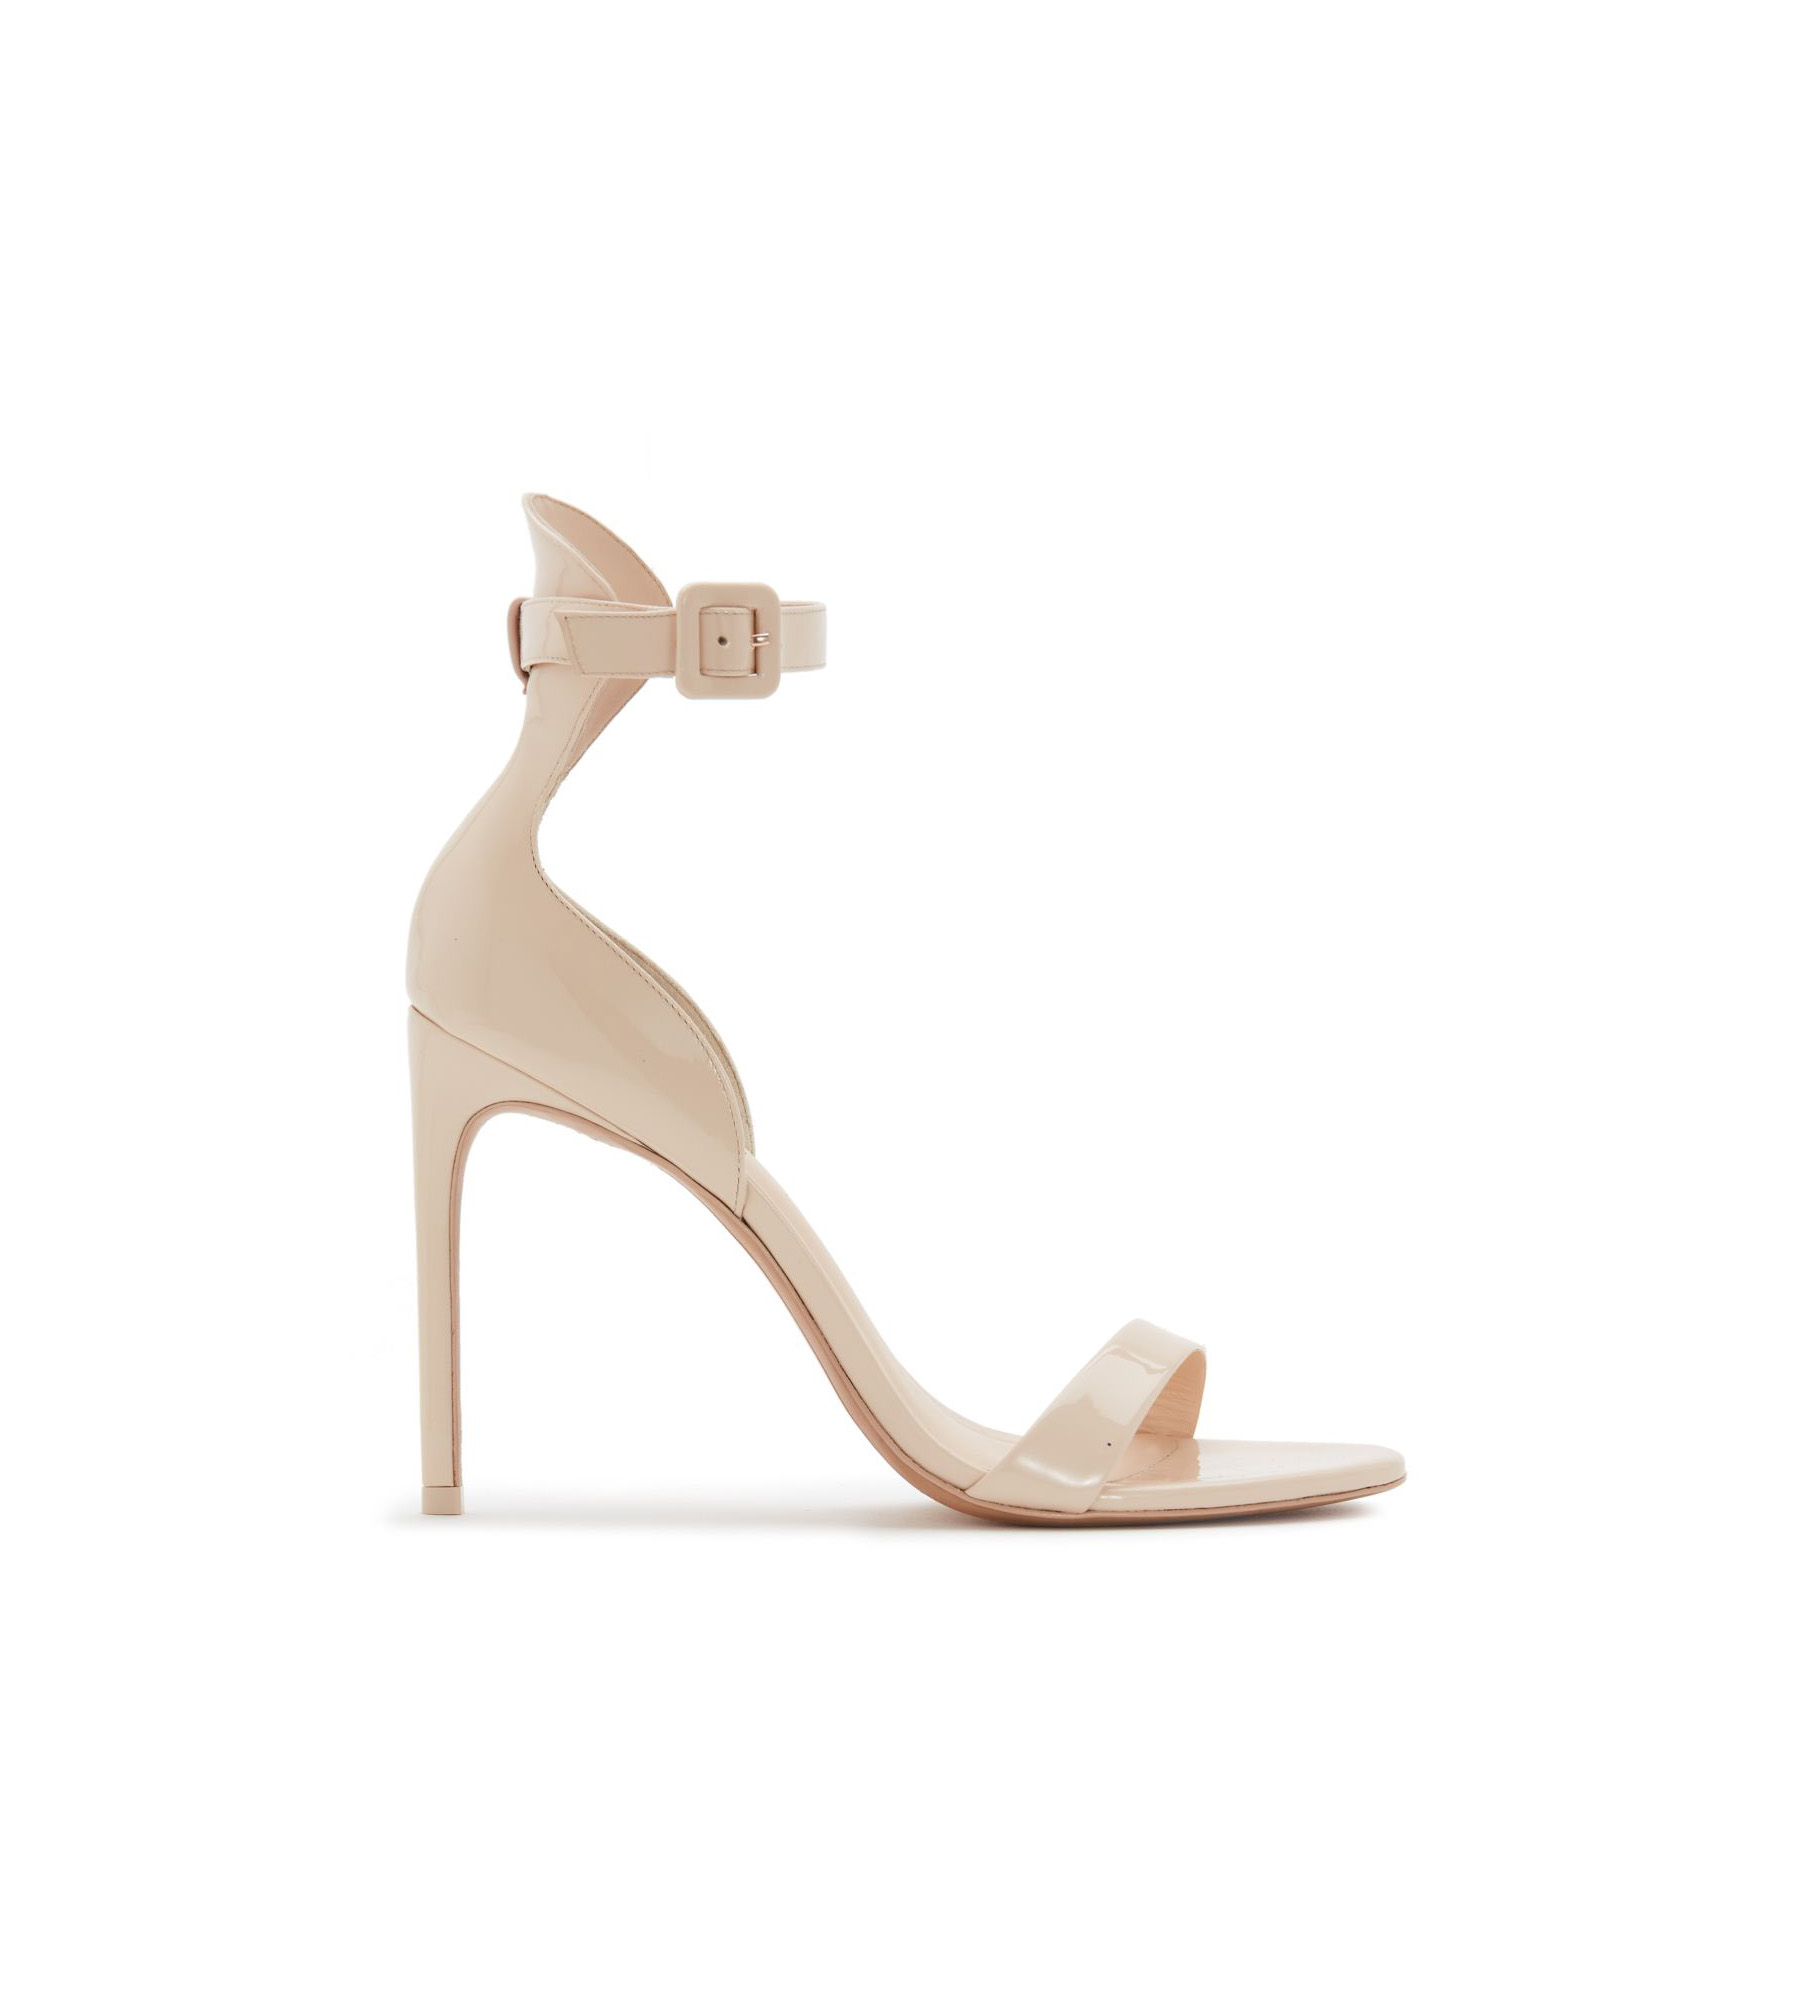 nude shoe patent leather strap heel sandals